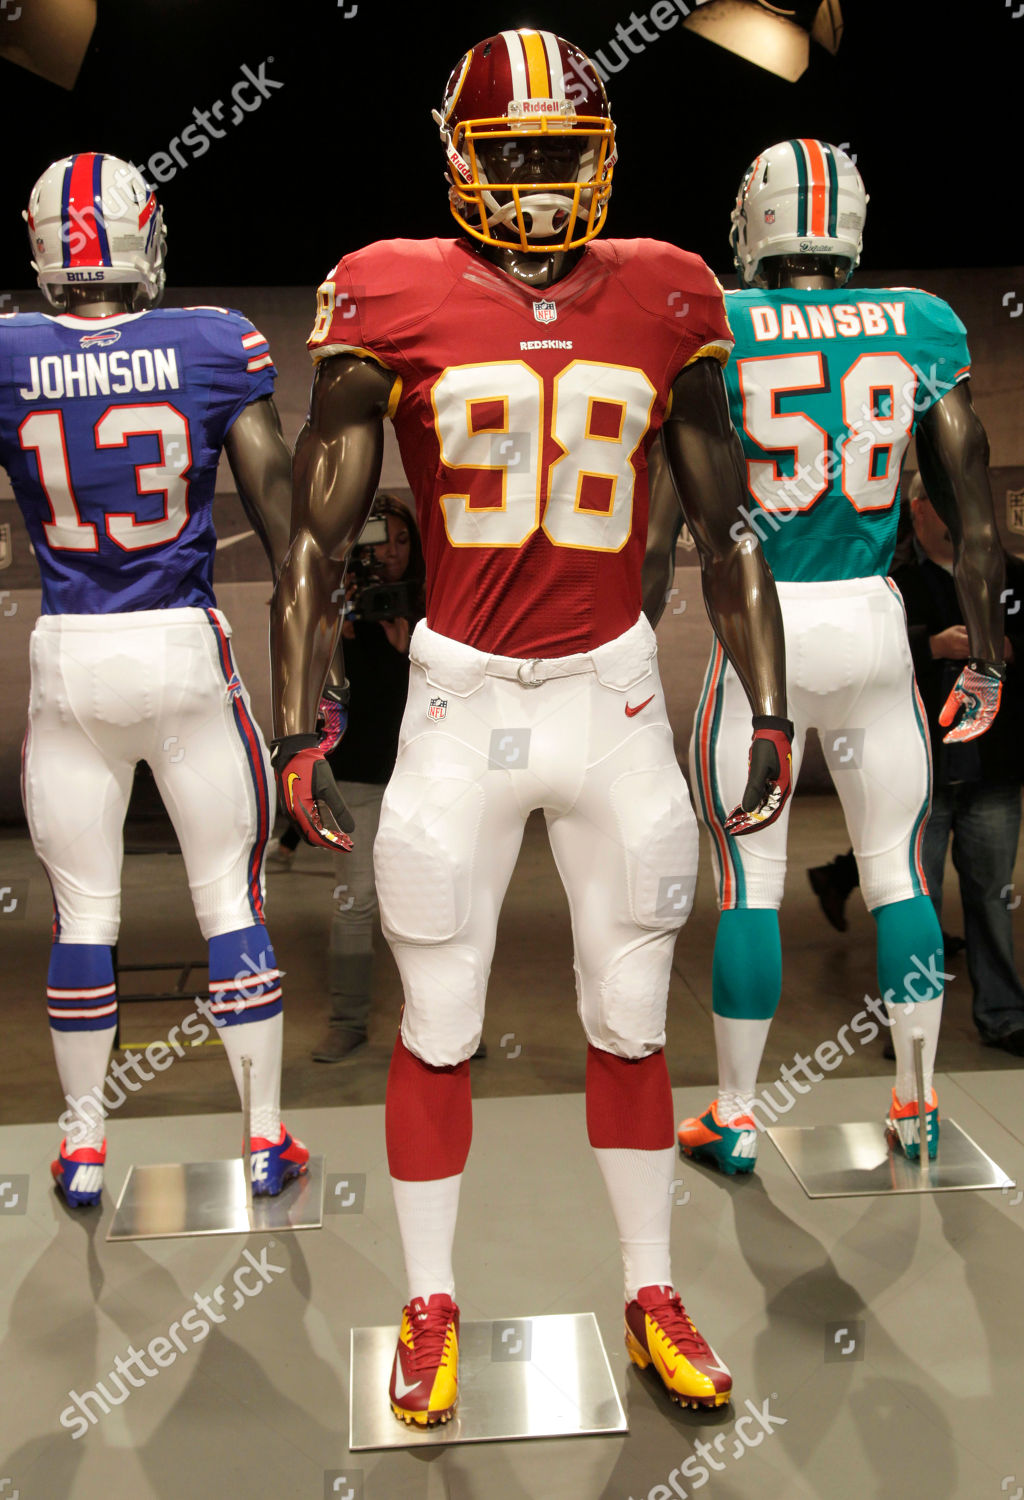 reputable site 08a4f a7d29 new Washington Redskins uniform displayed on mannequin ...